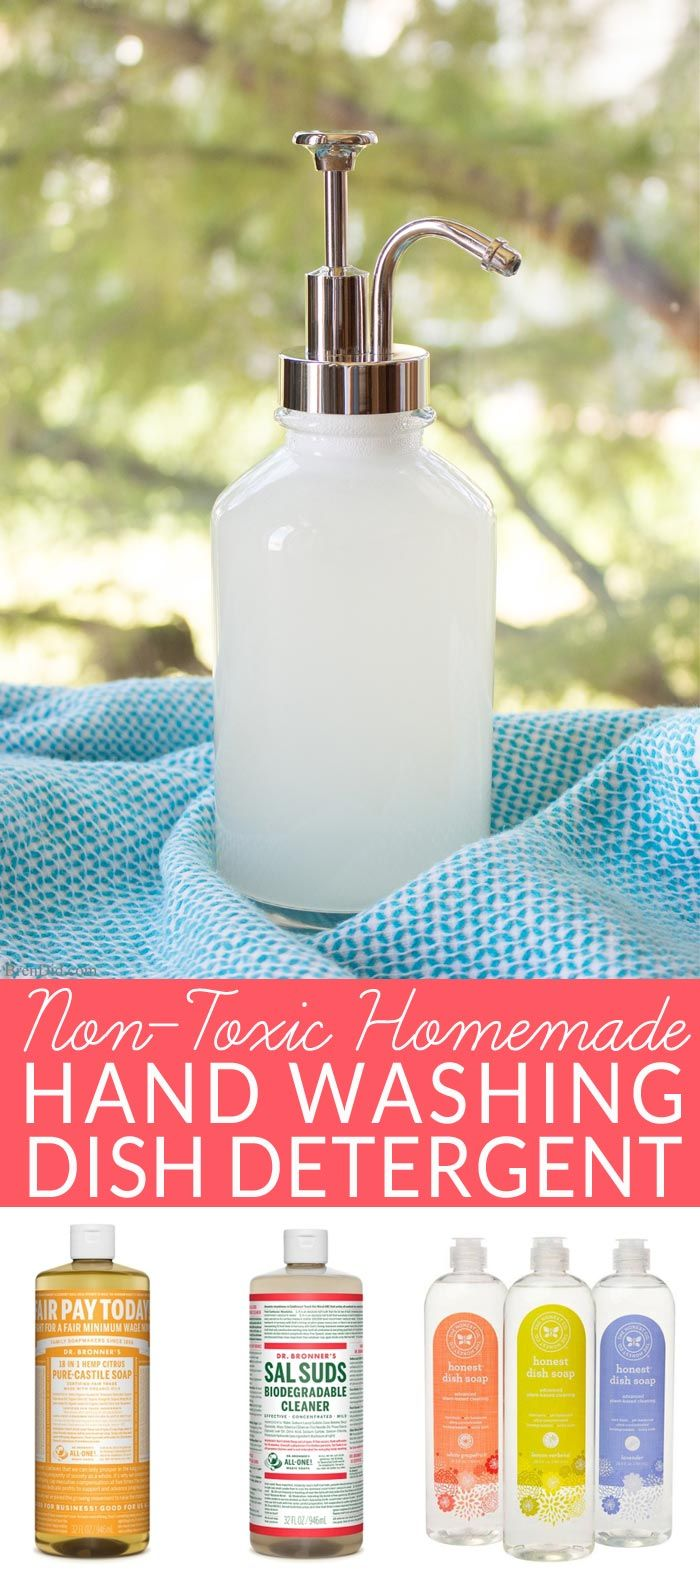 Two easy recipes for homemade dish detergent for hand washing - clean 16 sinks…